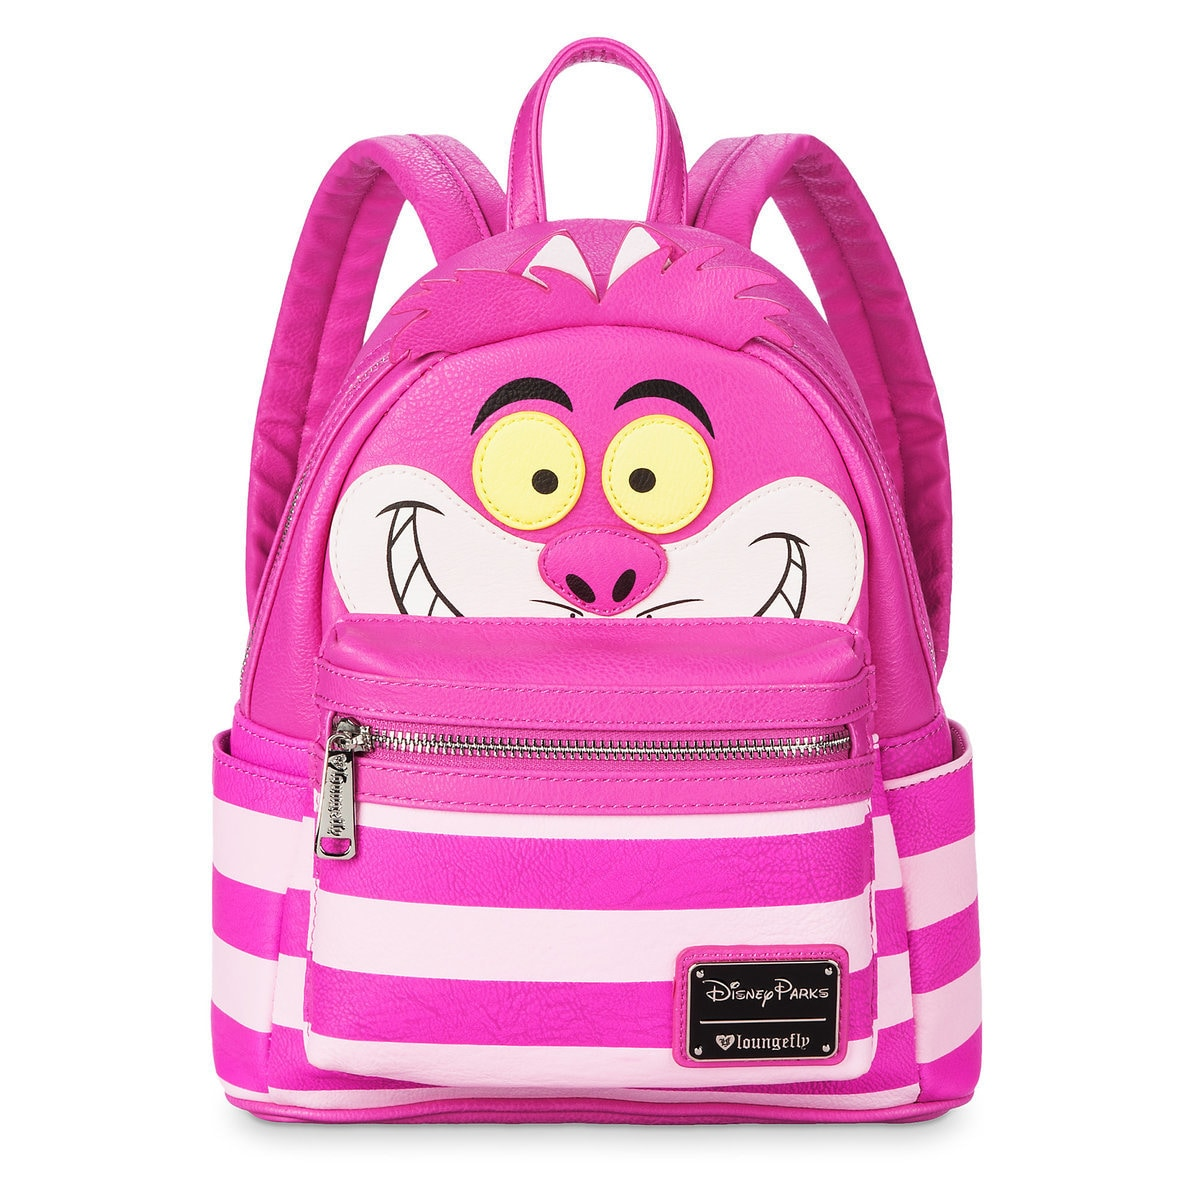 b9b18e716c8 Product Image of Cheshire Cat Backpack by Loungefly   1